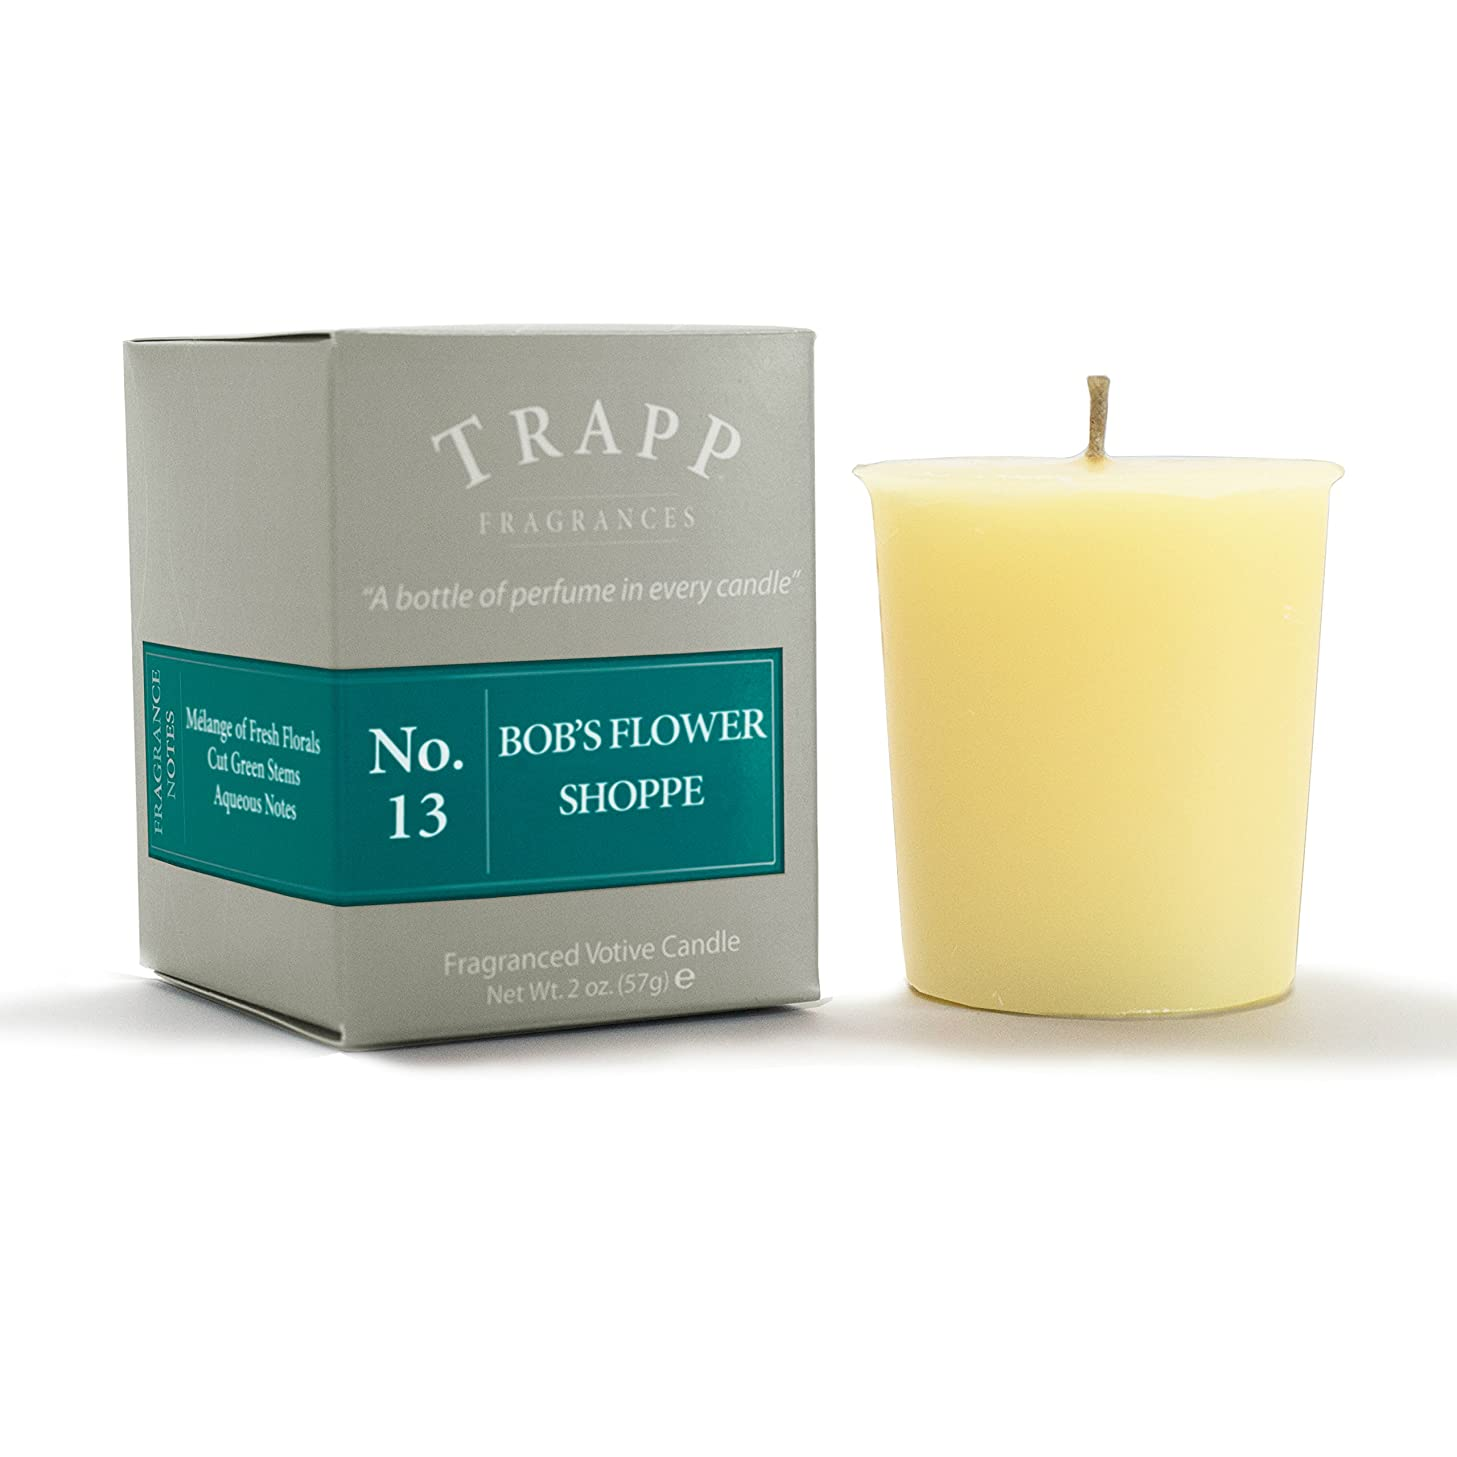 Trapp Signature Home Collection No. 13 Bob's Flower Shoppe 2 Ounce Votive - 2 Pack cbdzvecgk